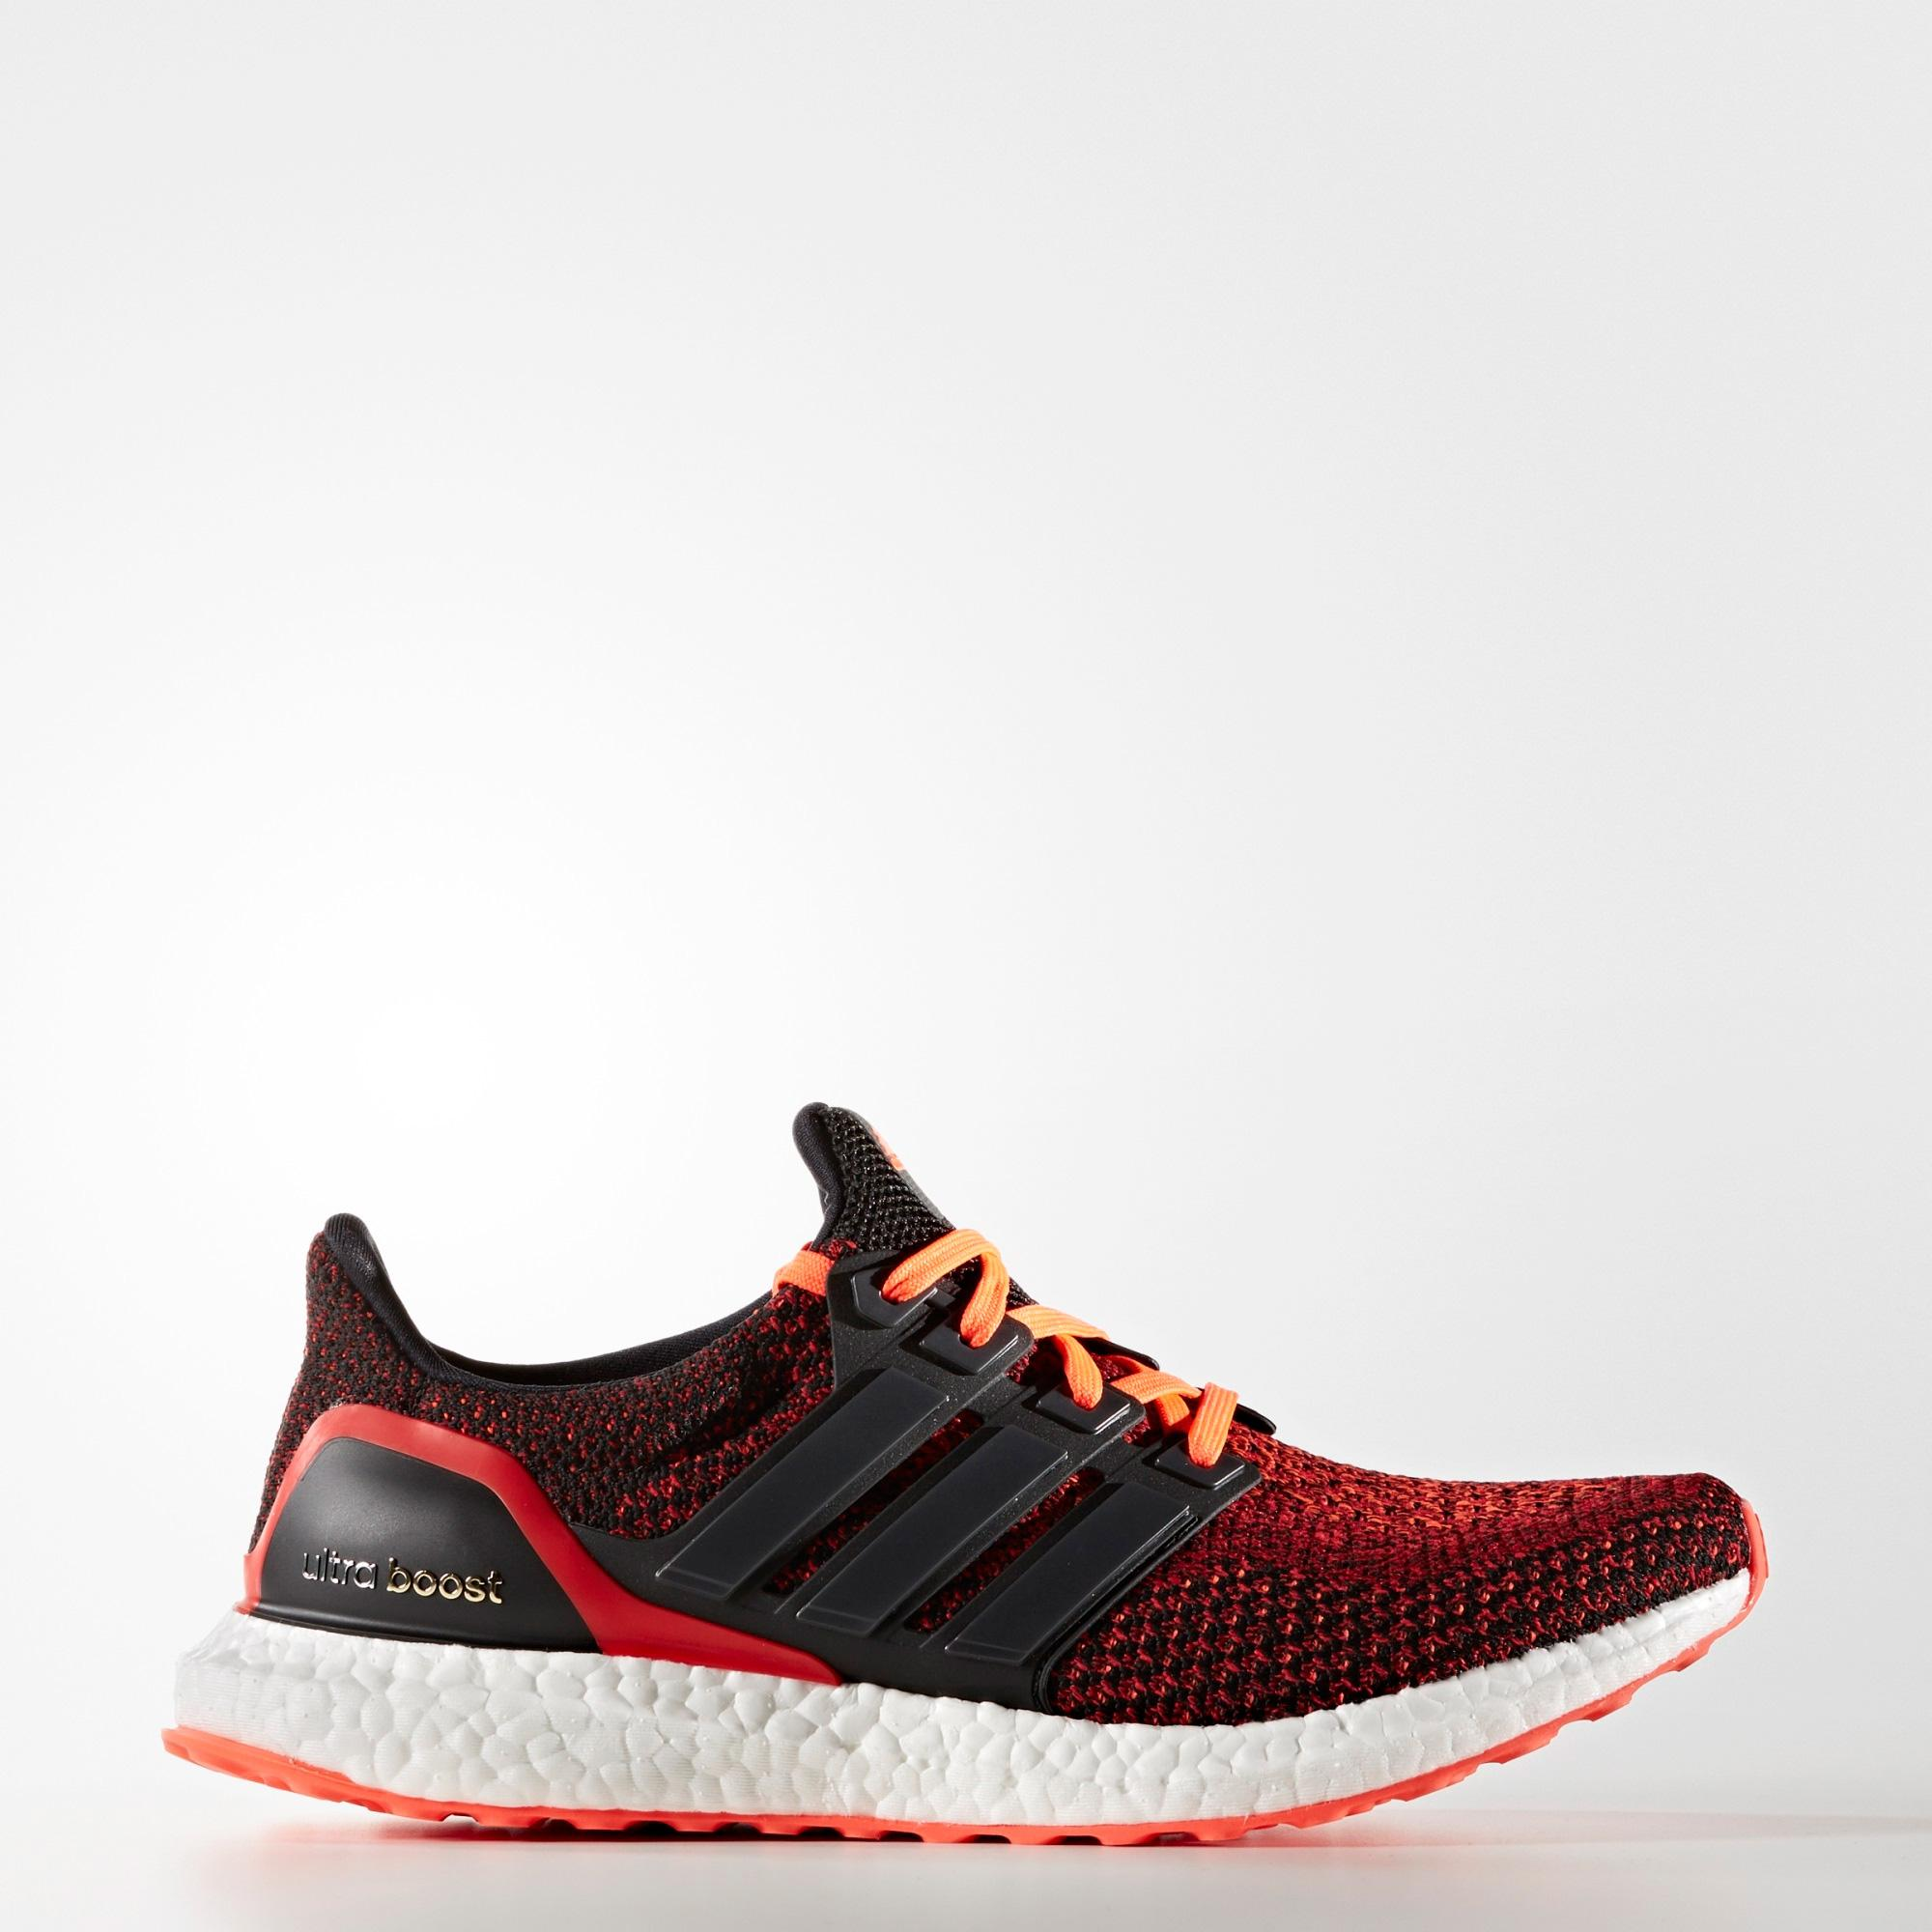 Adidas Mens Ultra Boost Running Shoes - Solar Red/Black